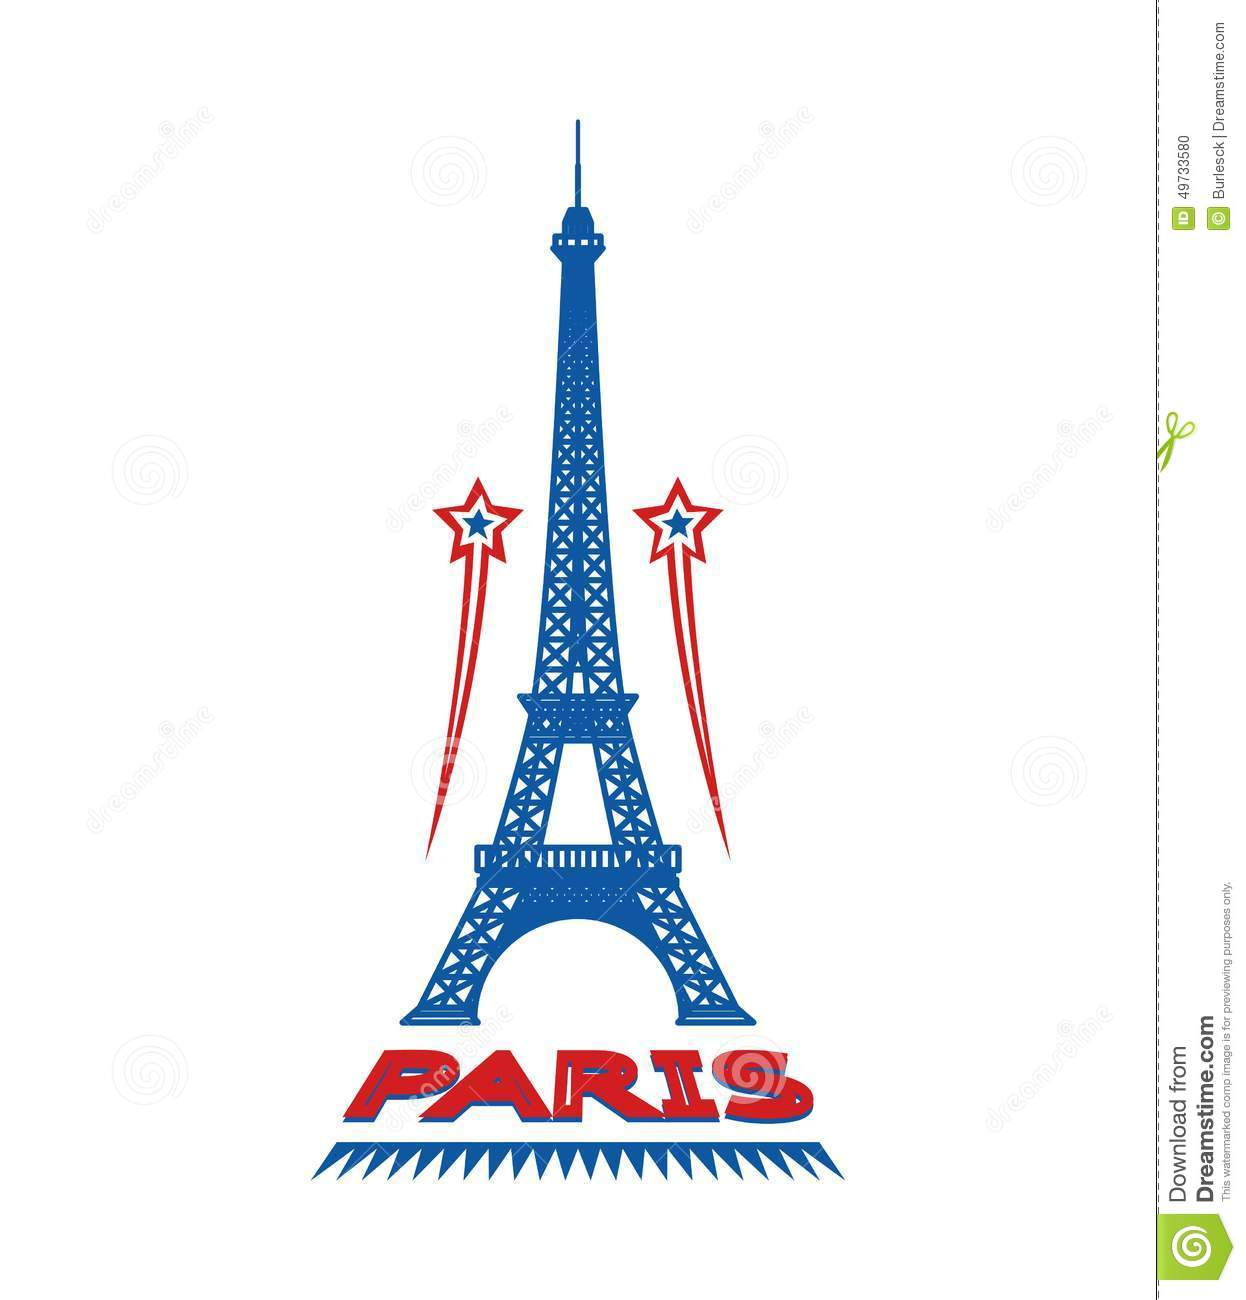 Paris France city label or logo